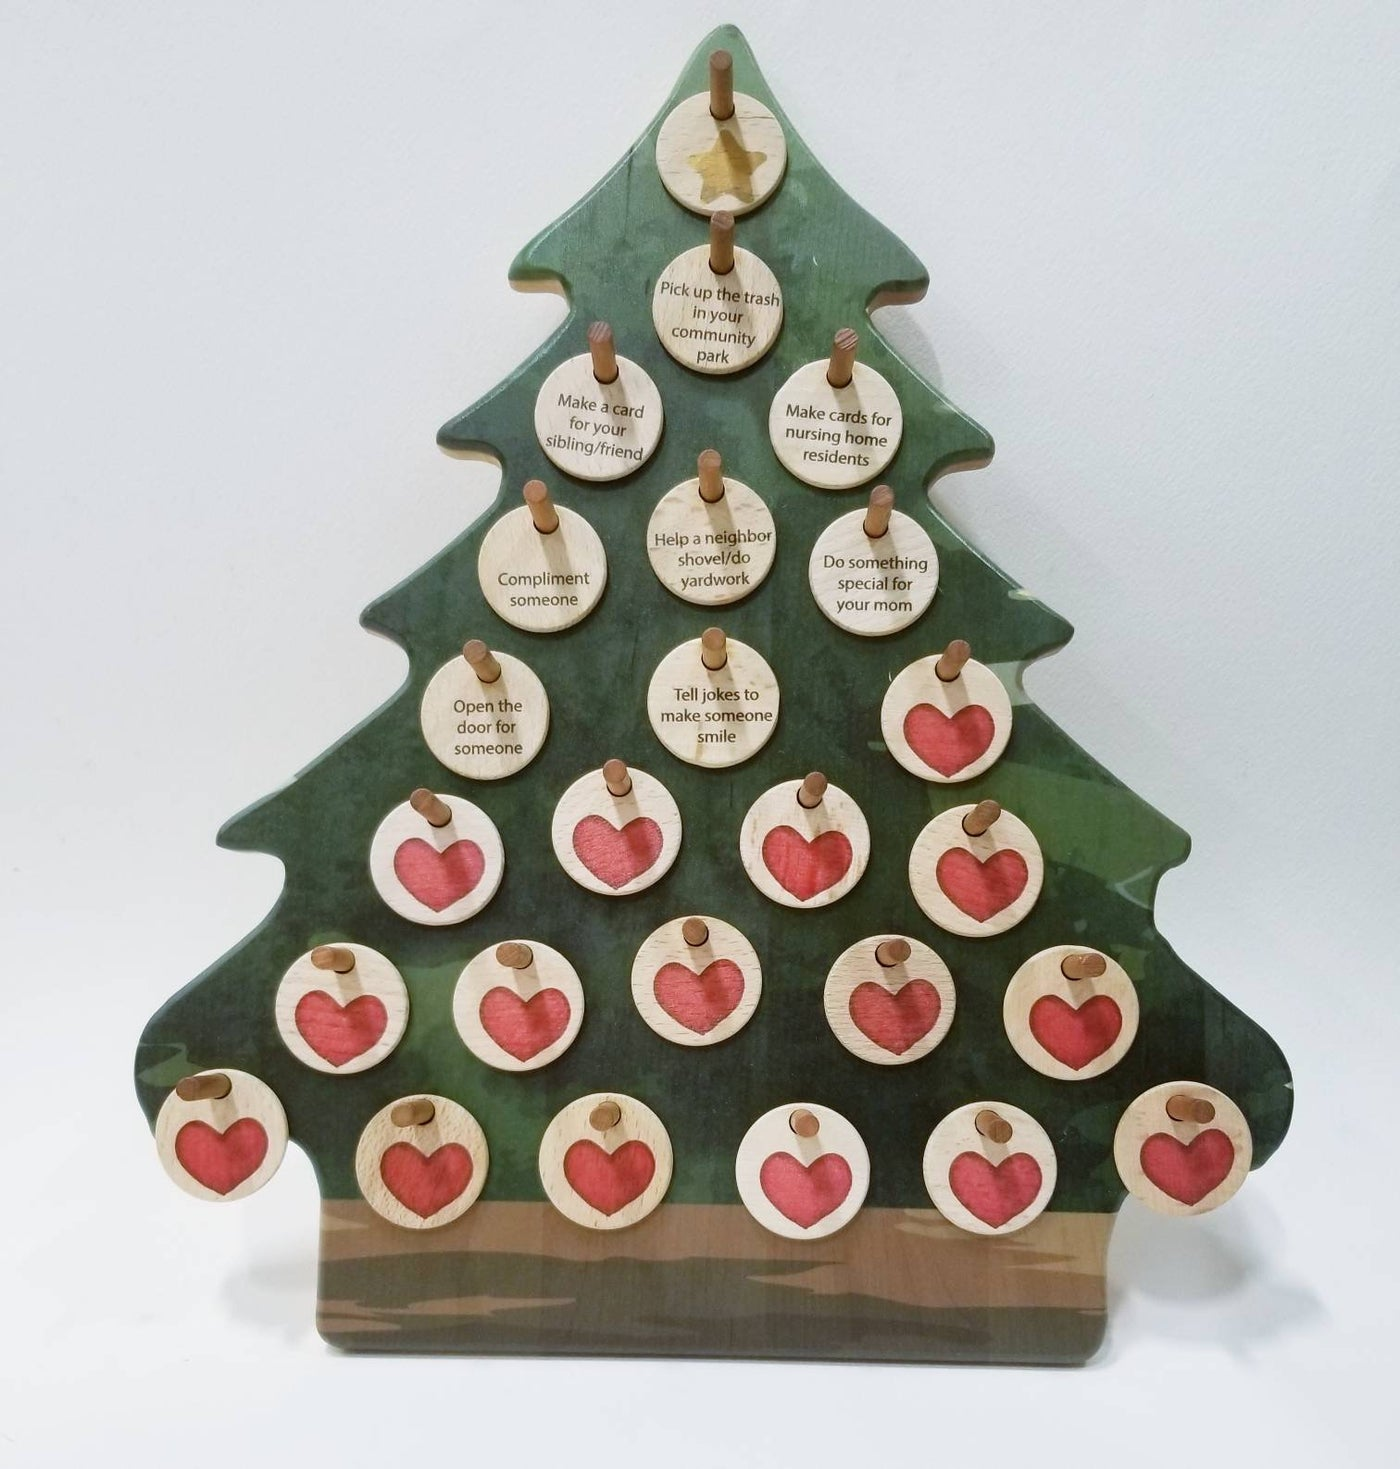 Advent calendar - kindness calendar - acts of kindness - Christmas tree